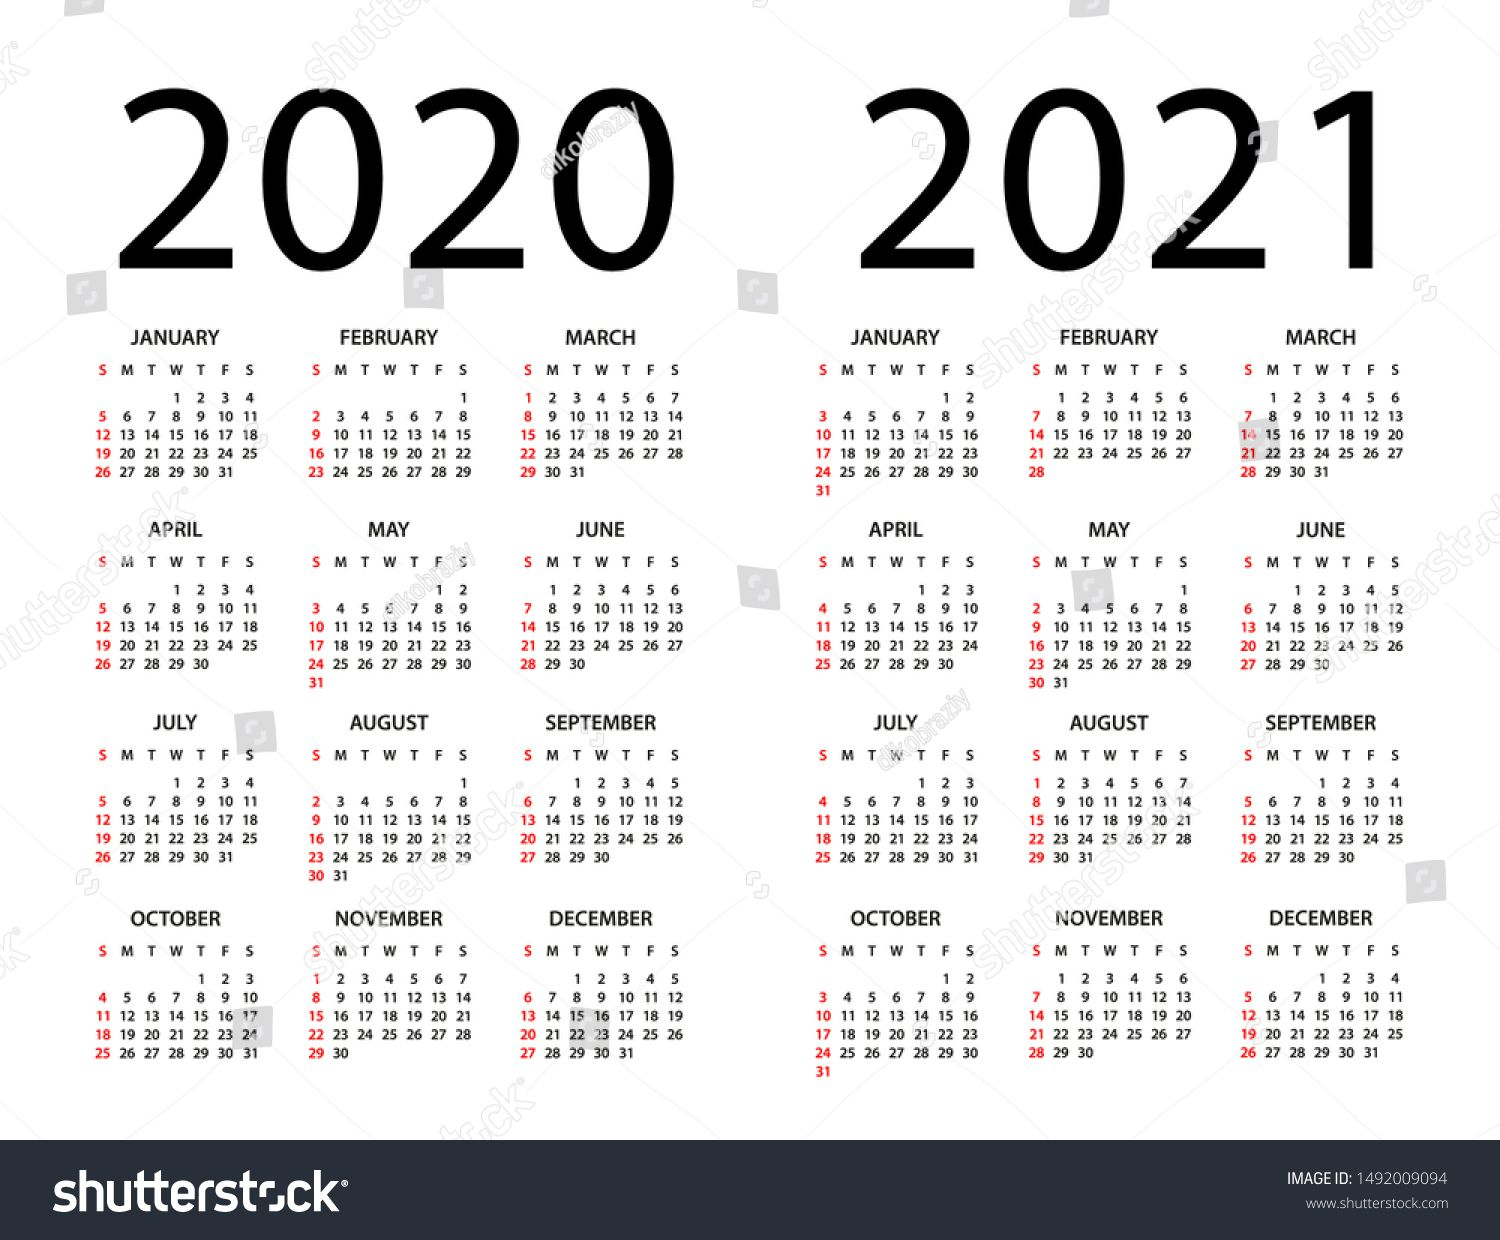 Calendar 2020 2021 Year Vector Illustration Week Starts On Sunday Ad Ad Year Calendar Vector Calendar Printables Calendar 2020 Calendar 2019 And 2020